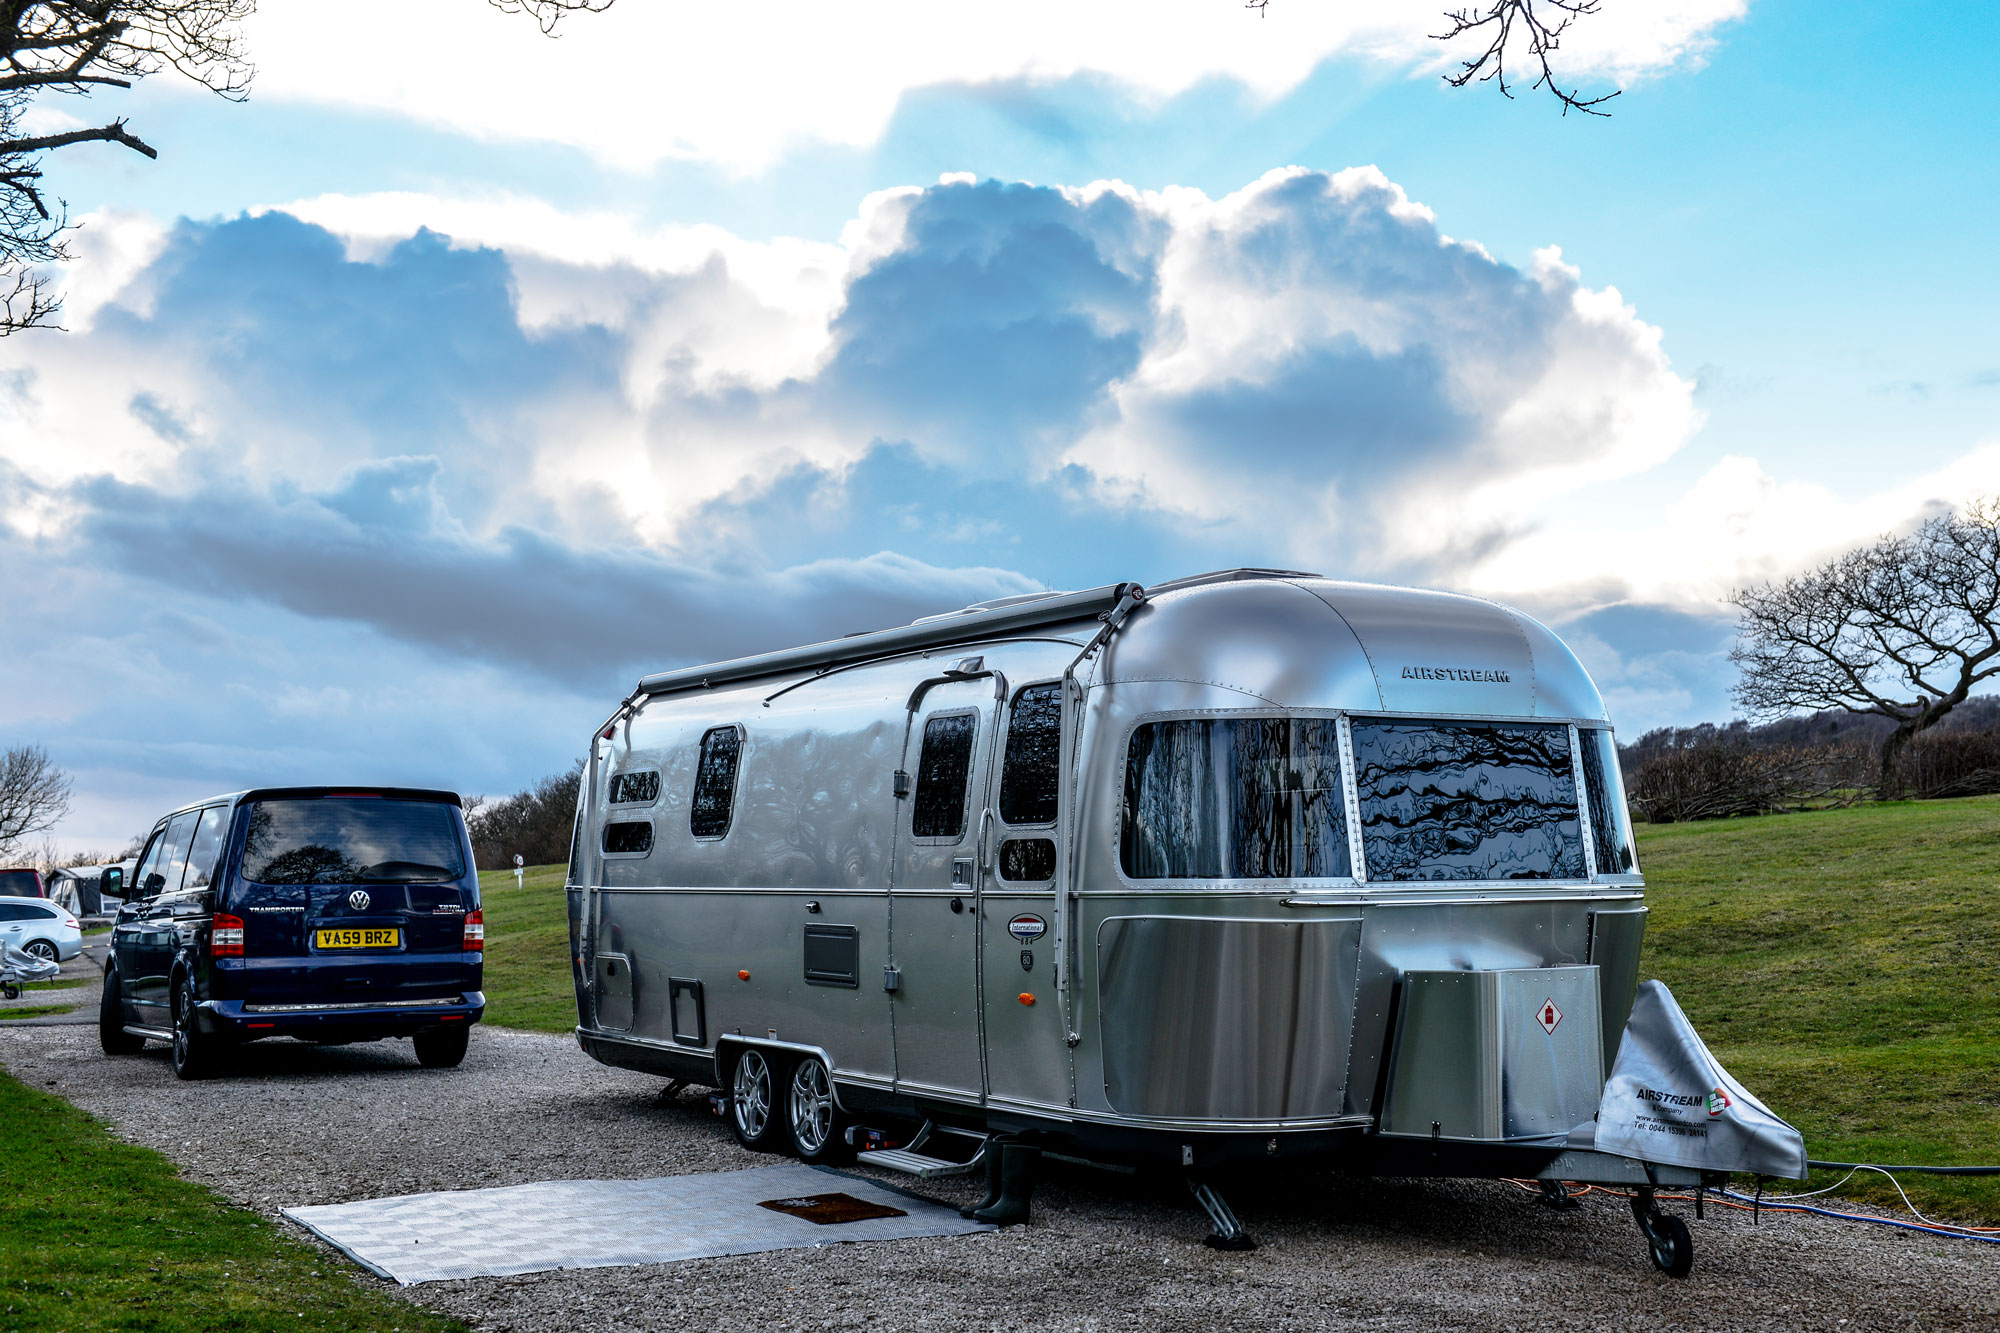 A beautiful Airstream at one of the Caravan Club sites